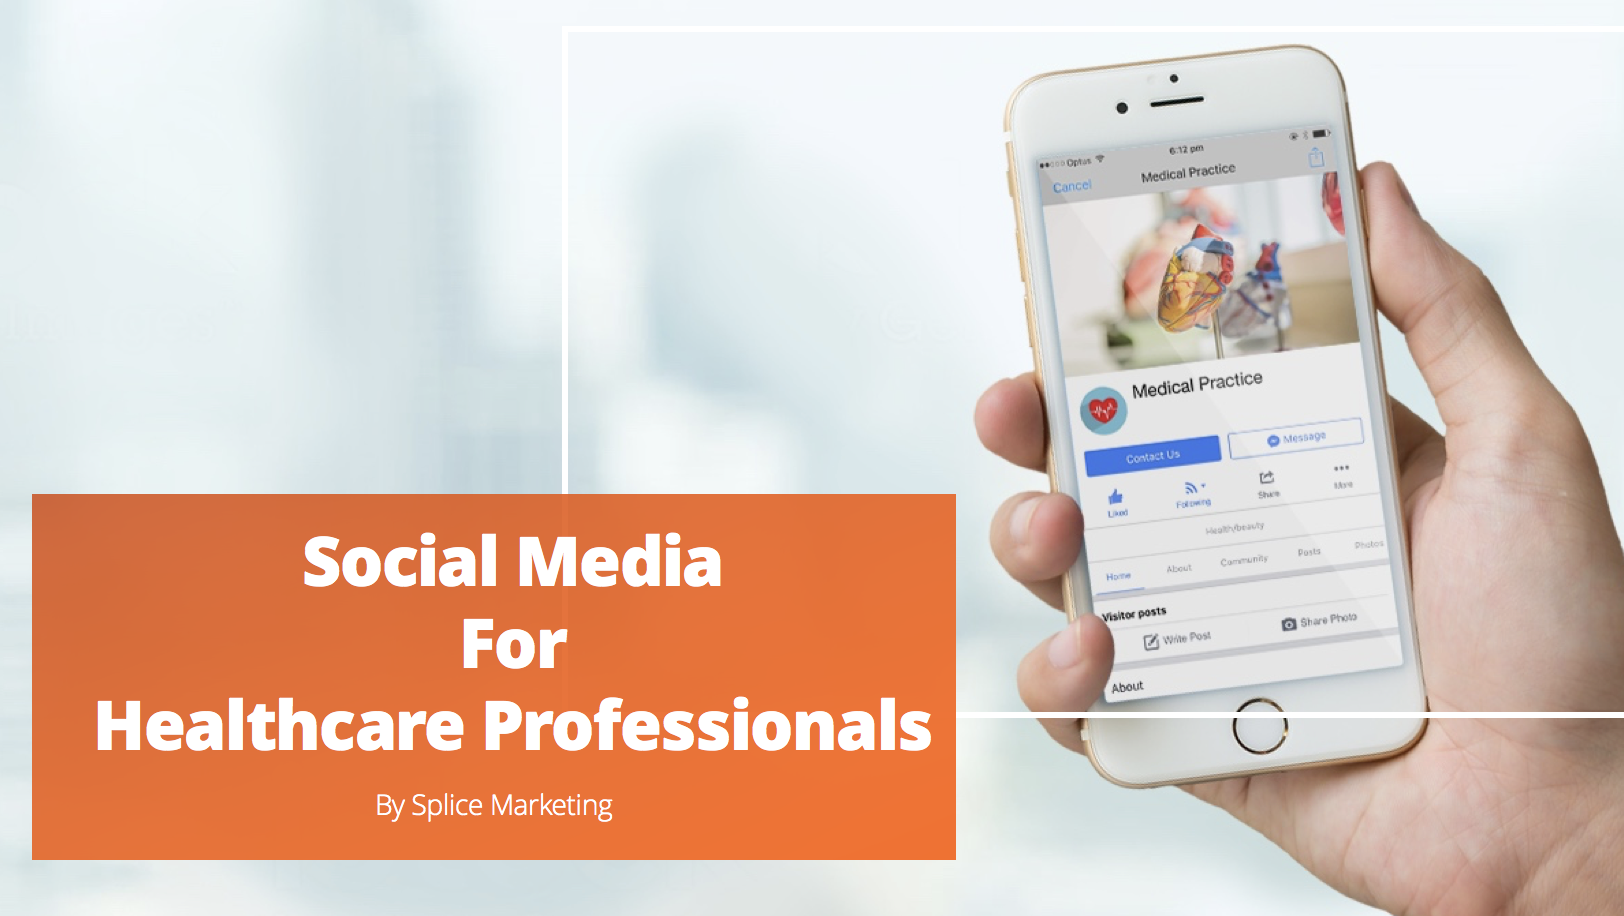 Making social media work for healthcare professionals